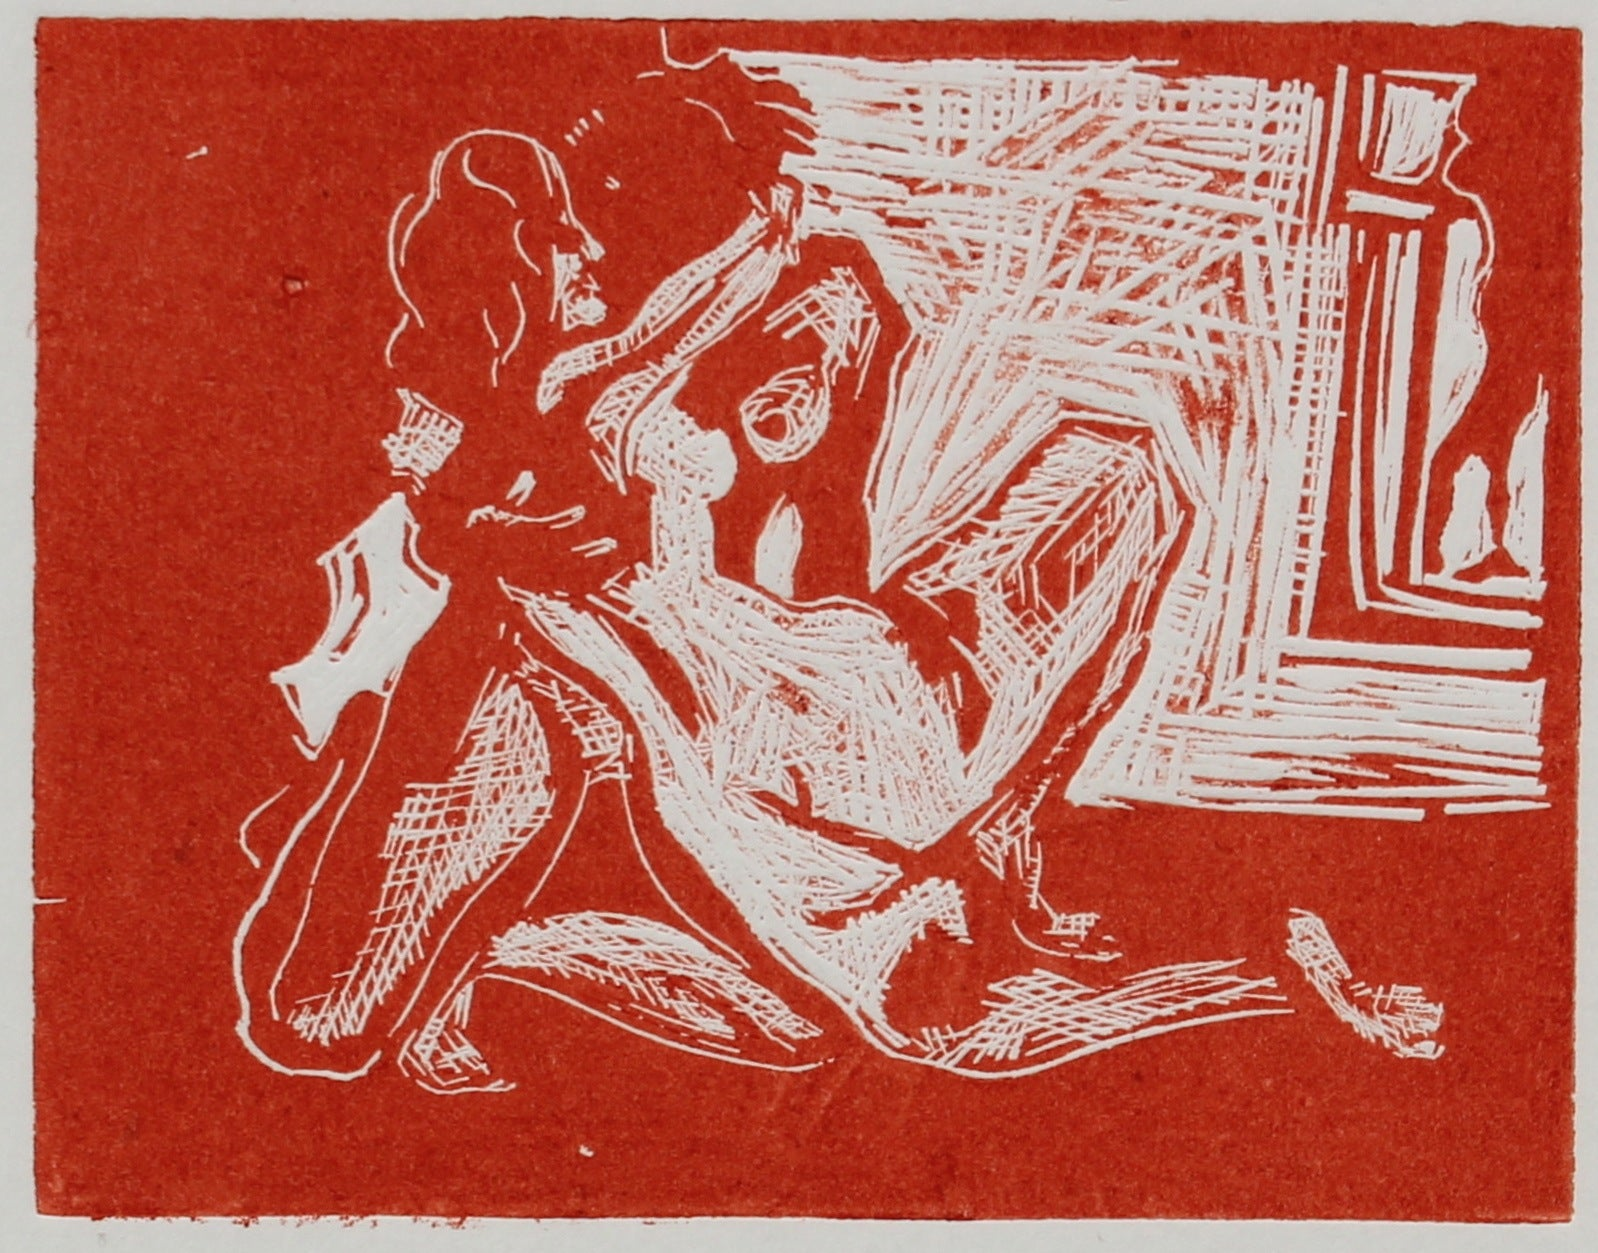 Nudes in Embrace<br>Woodcut, 1960-70s<br><br>#2232A